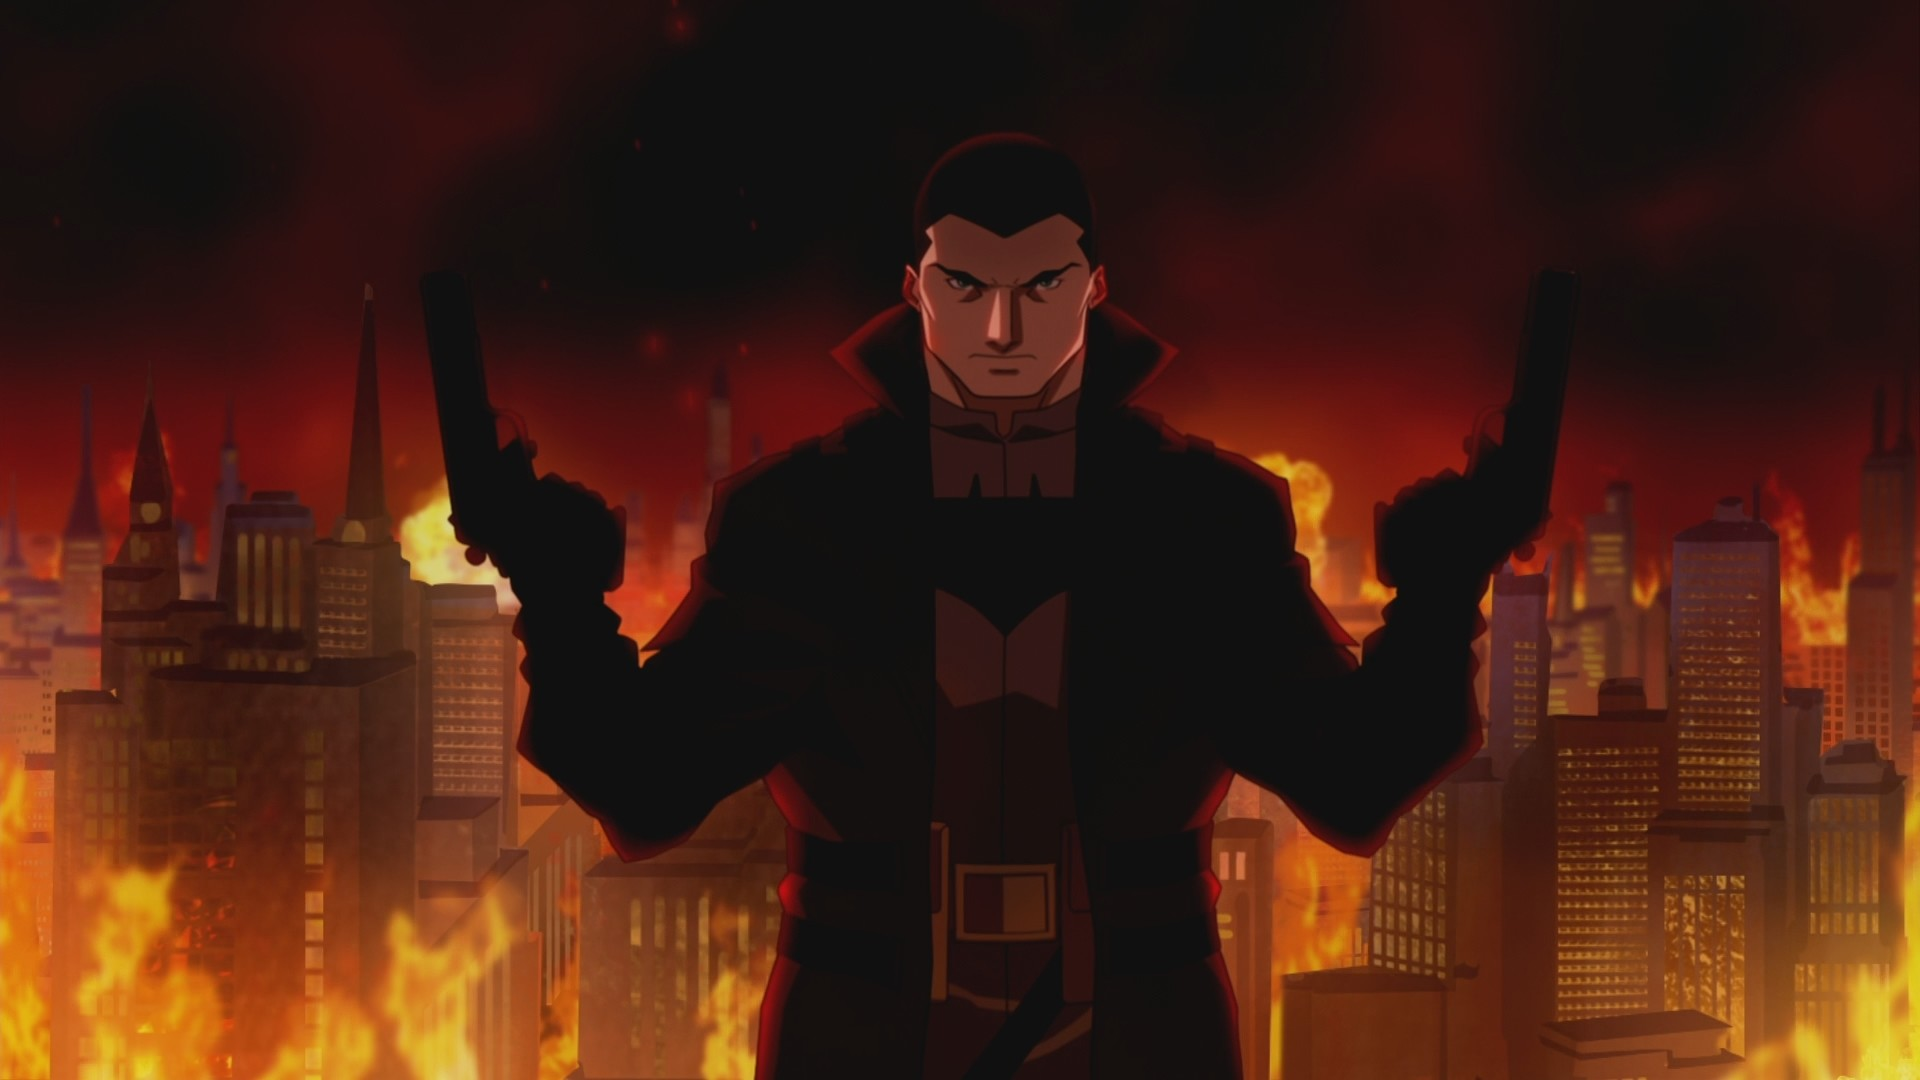 Robin' may not be as strong as Scott Snyder's 'Court of Owls' comic book  story upon which it is based, but it still does a pretty good job in taking  …